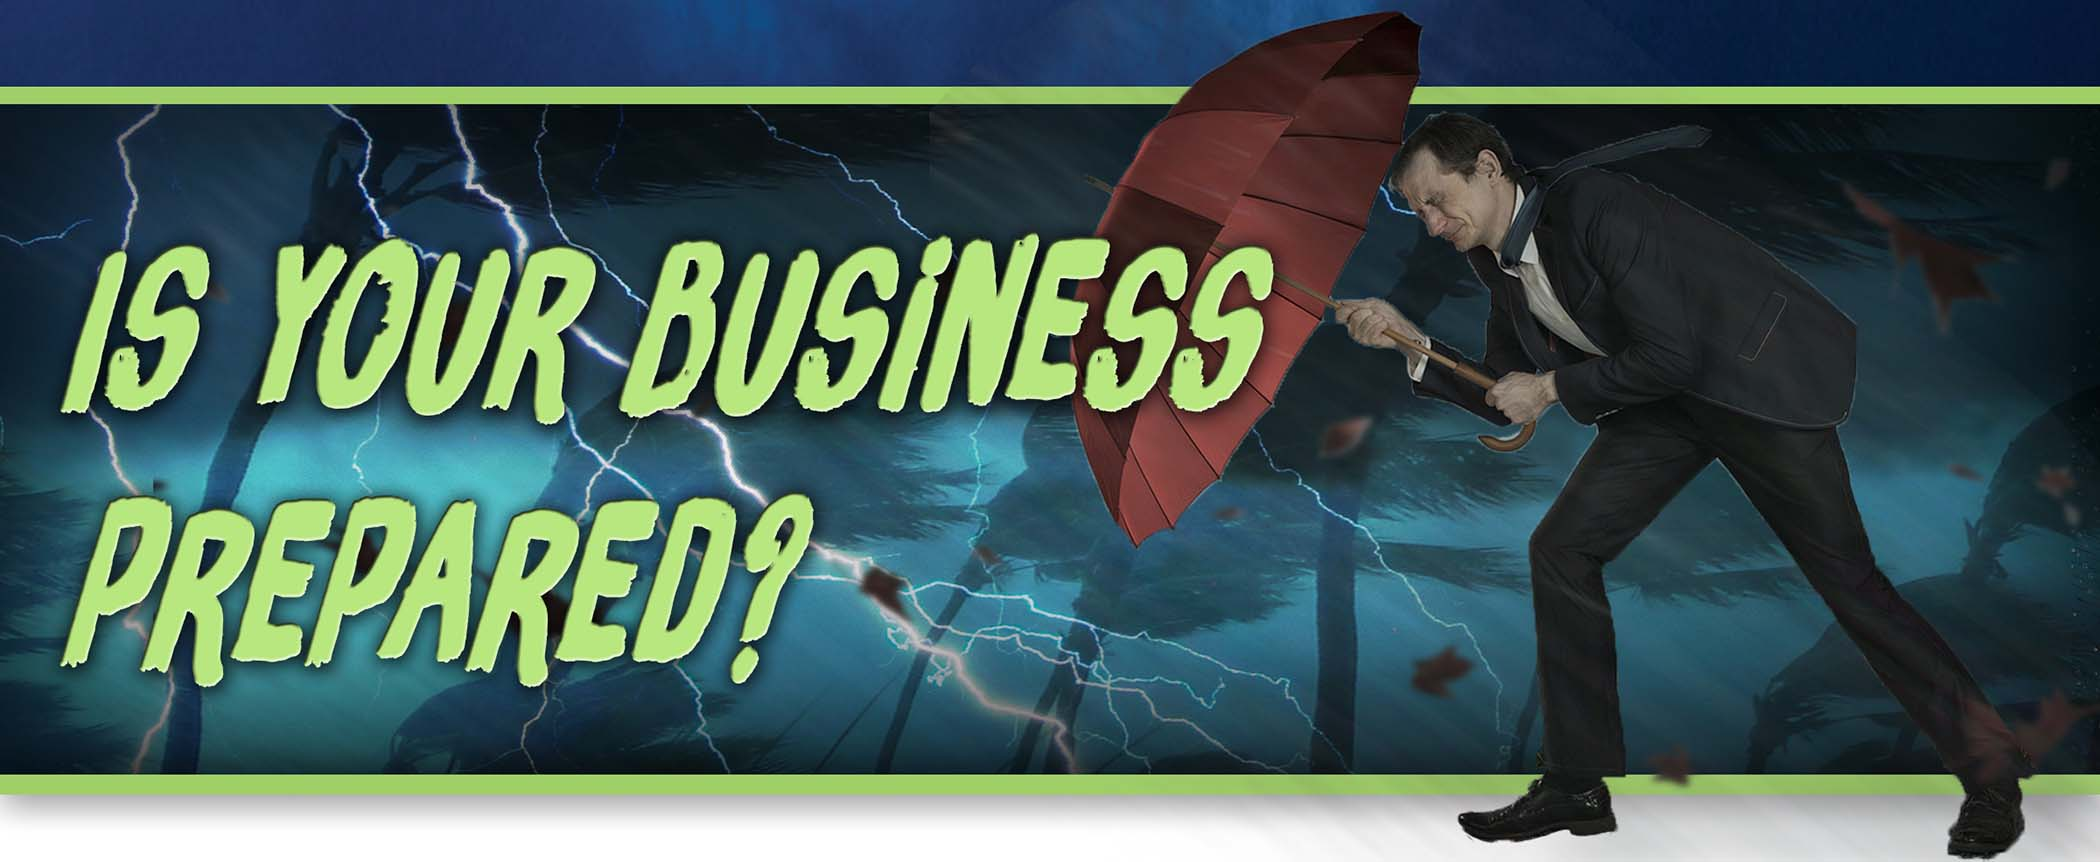 Is your business prepared banner.jpg